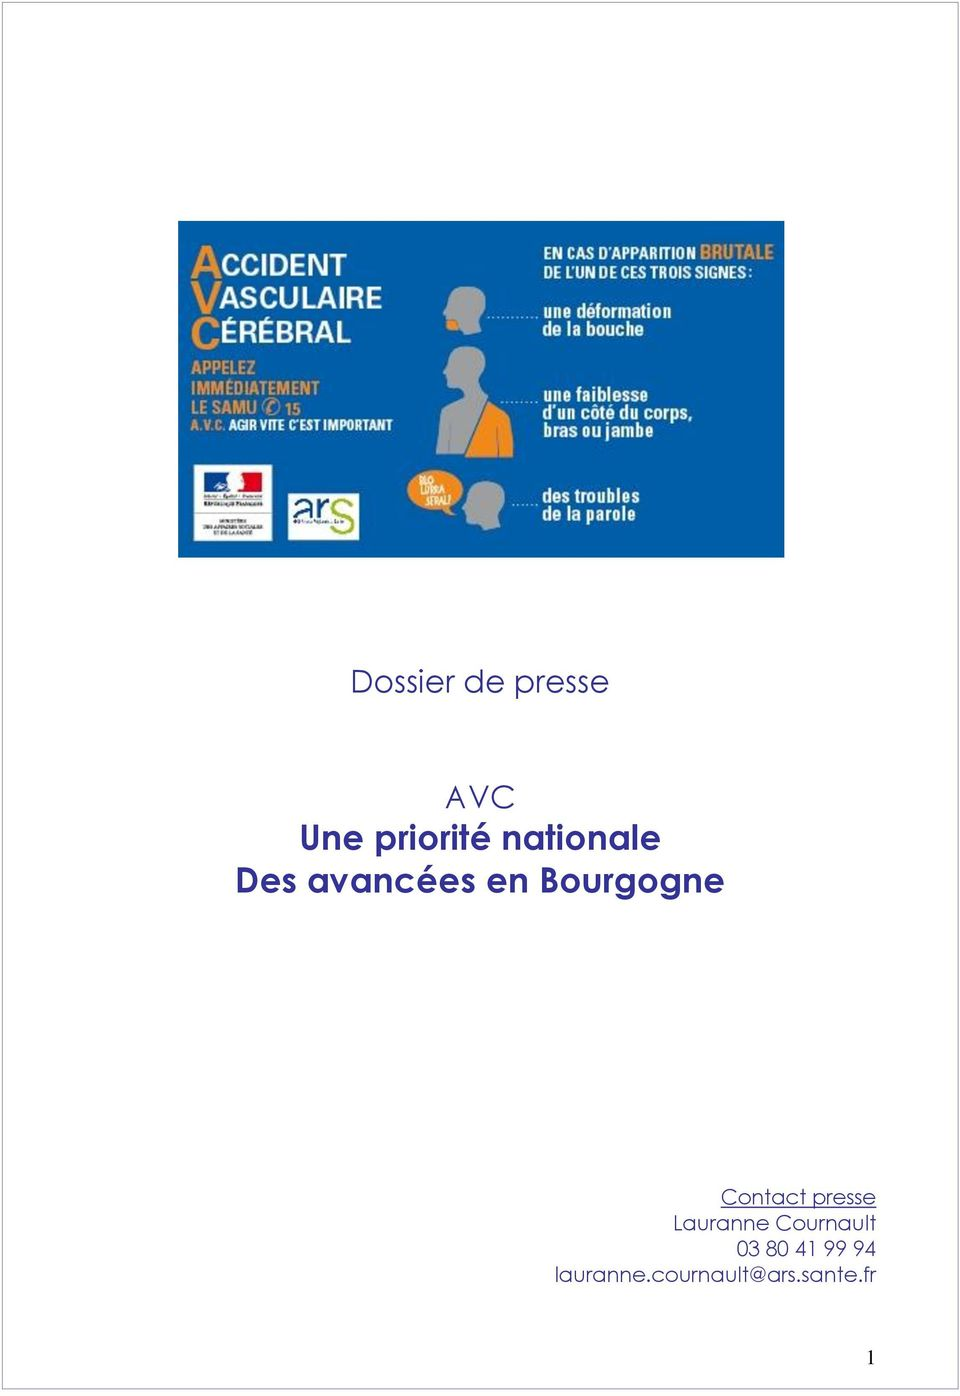 Contact presse Lauranne Cournault 03